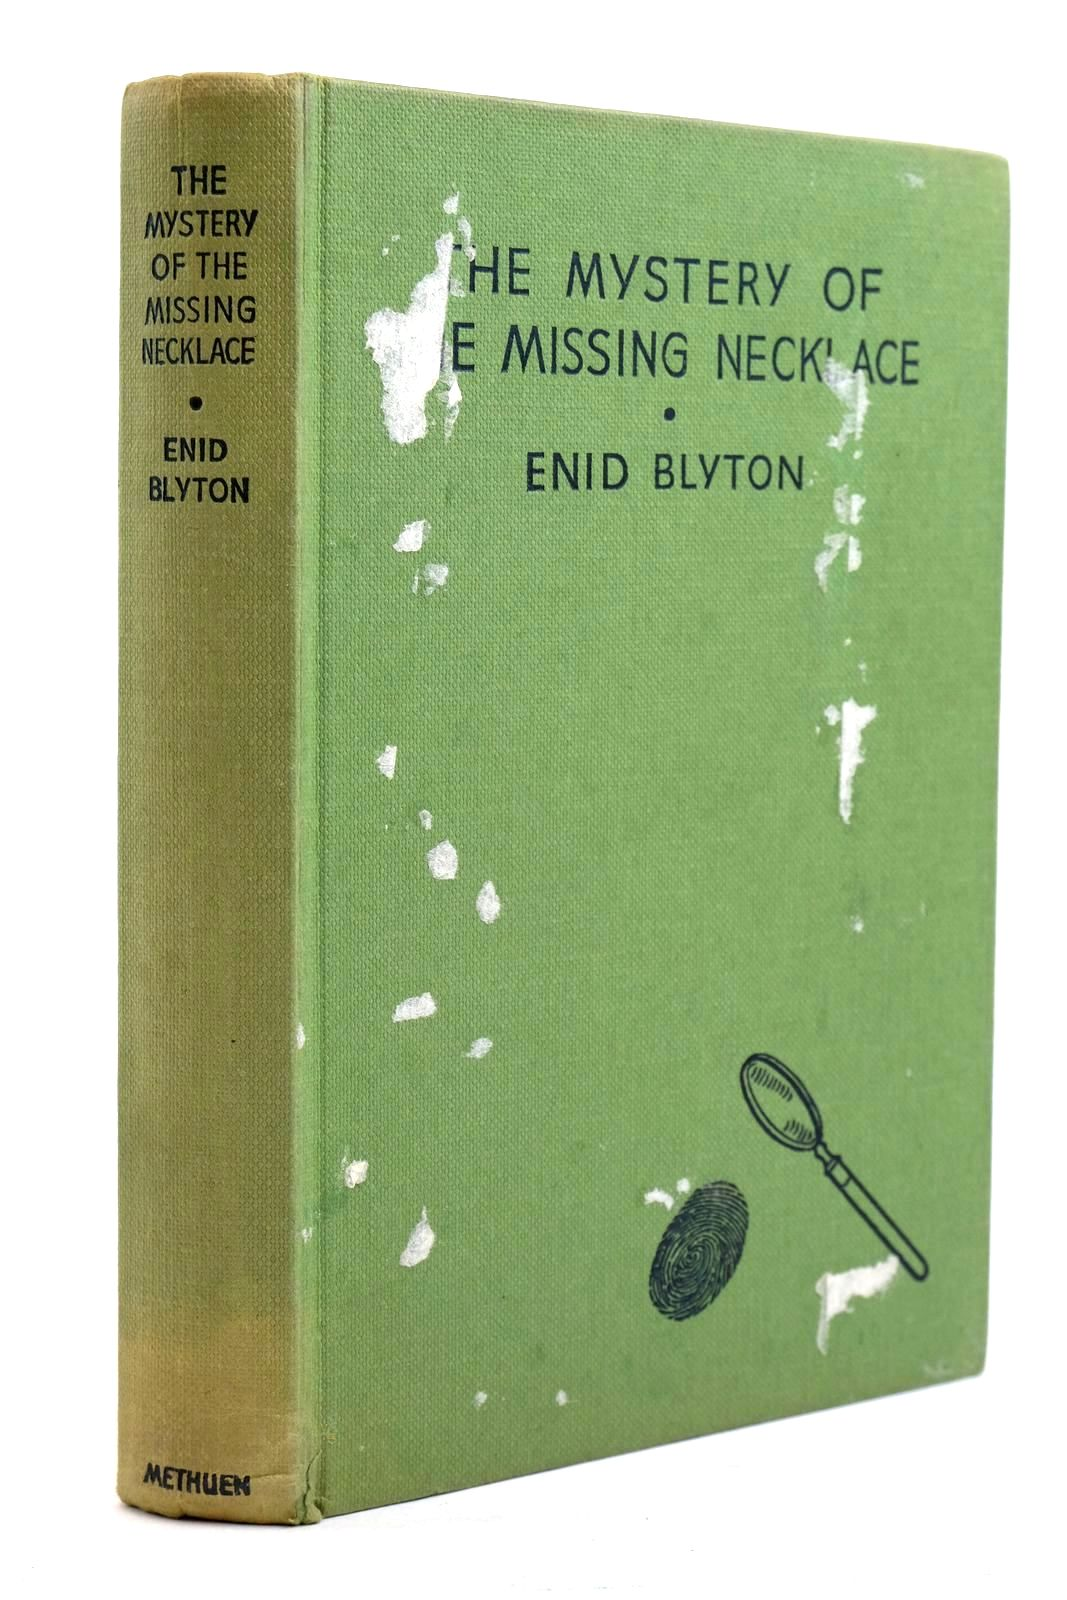 Photo of THE MYSTERY OF THE MISSING NECKLACE written by Blyton, Enid illustrated by Abbey, J. published by Methuen & Co. Ltd. (STOCK CODE: 1320753)  for sale by Stella & Rose's Books